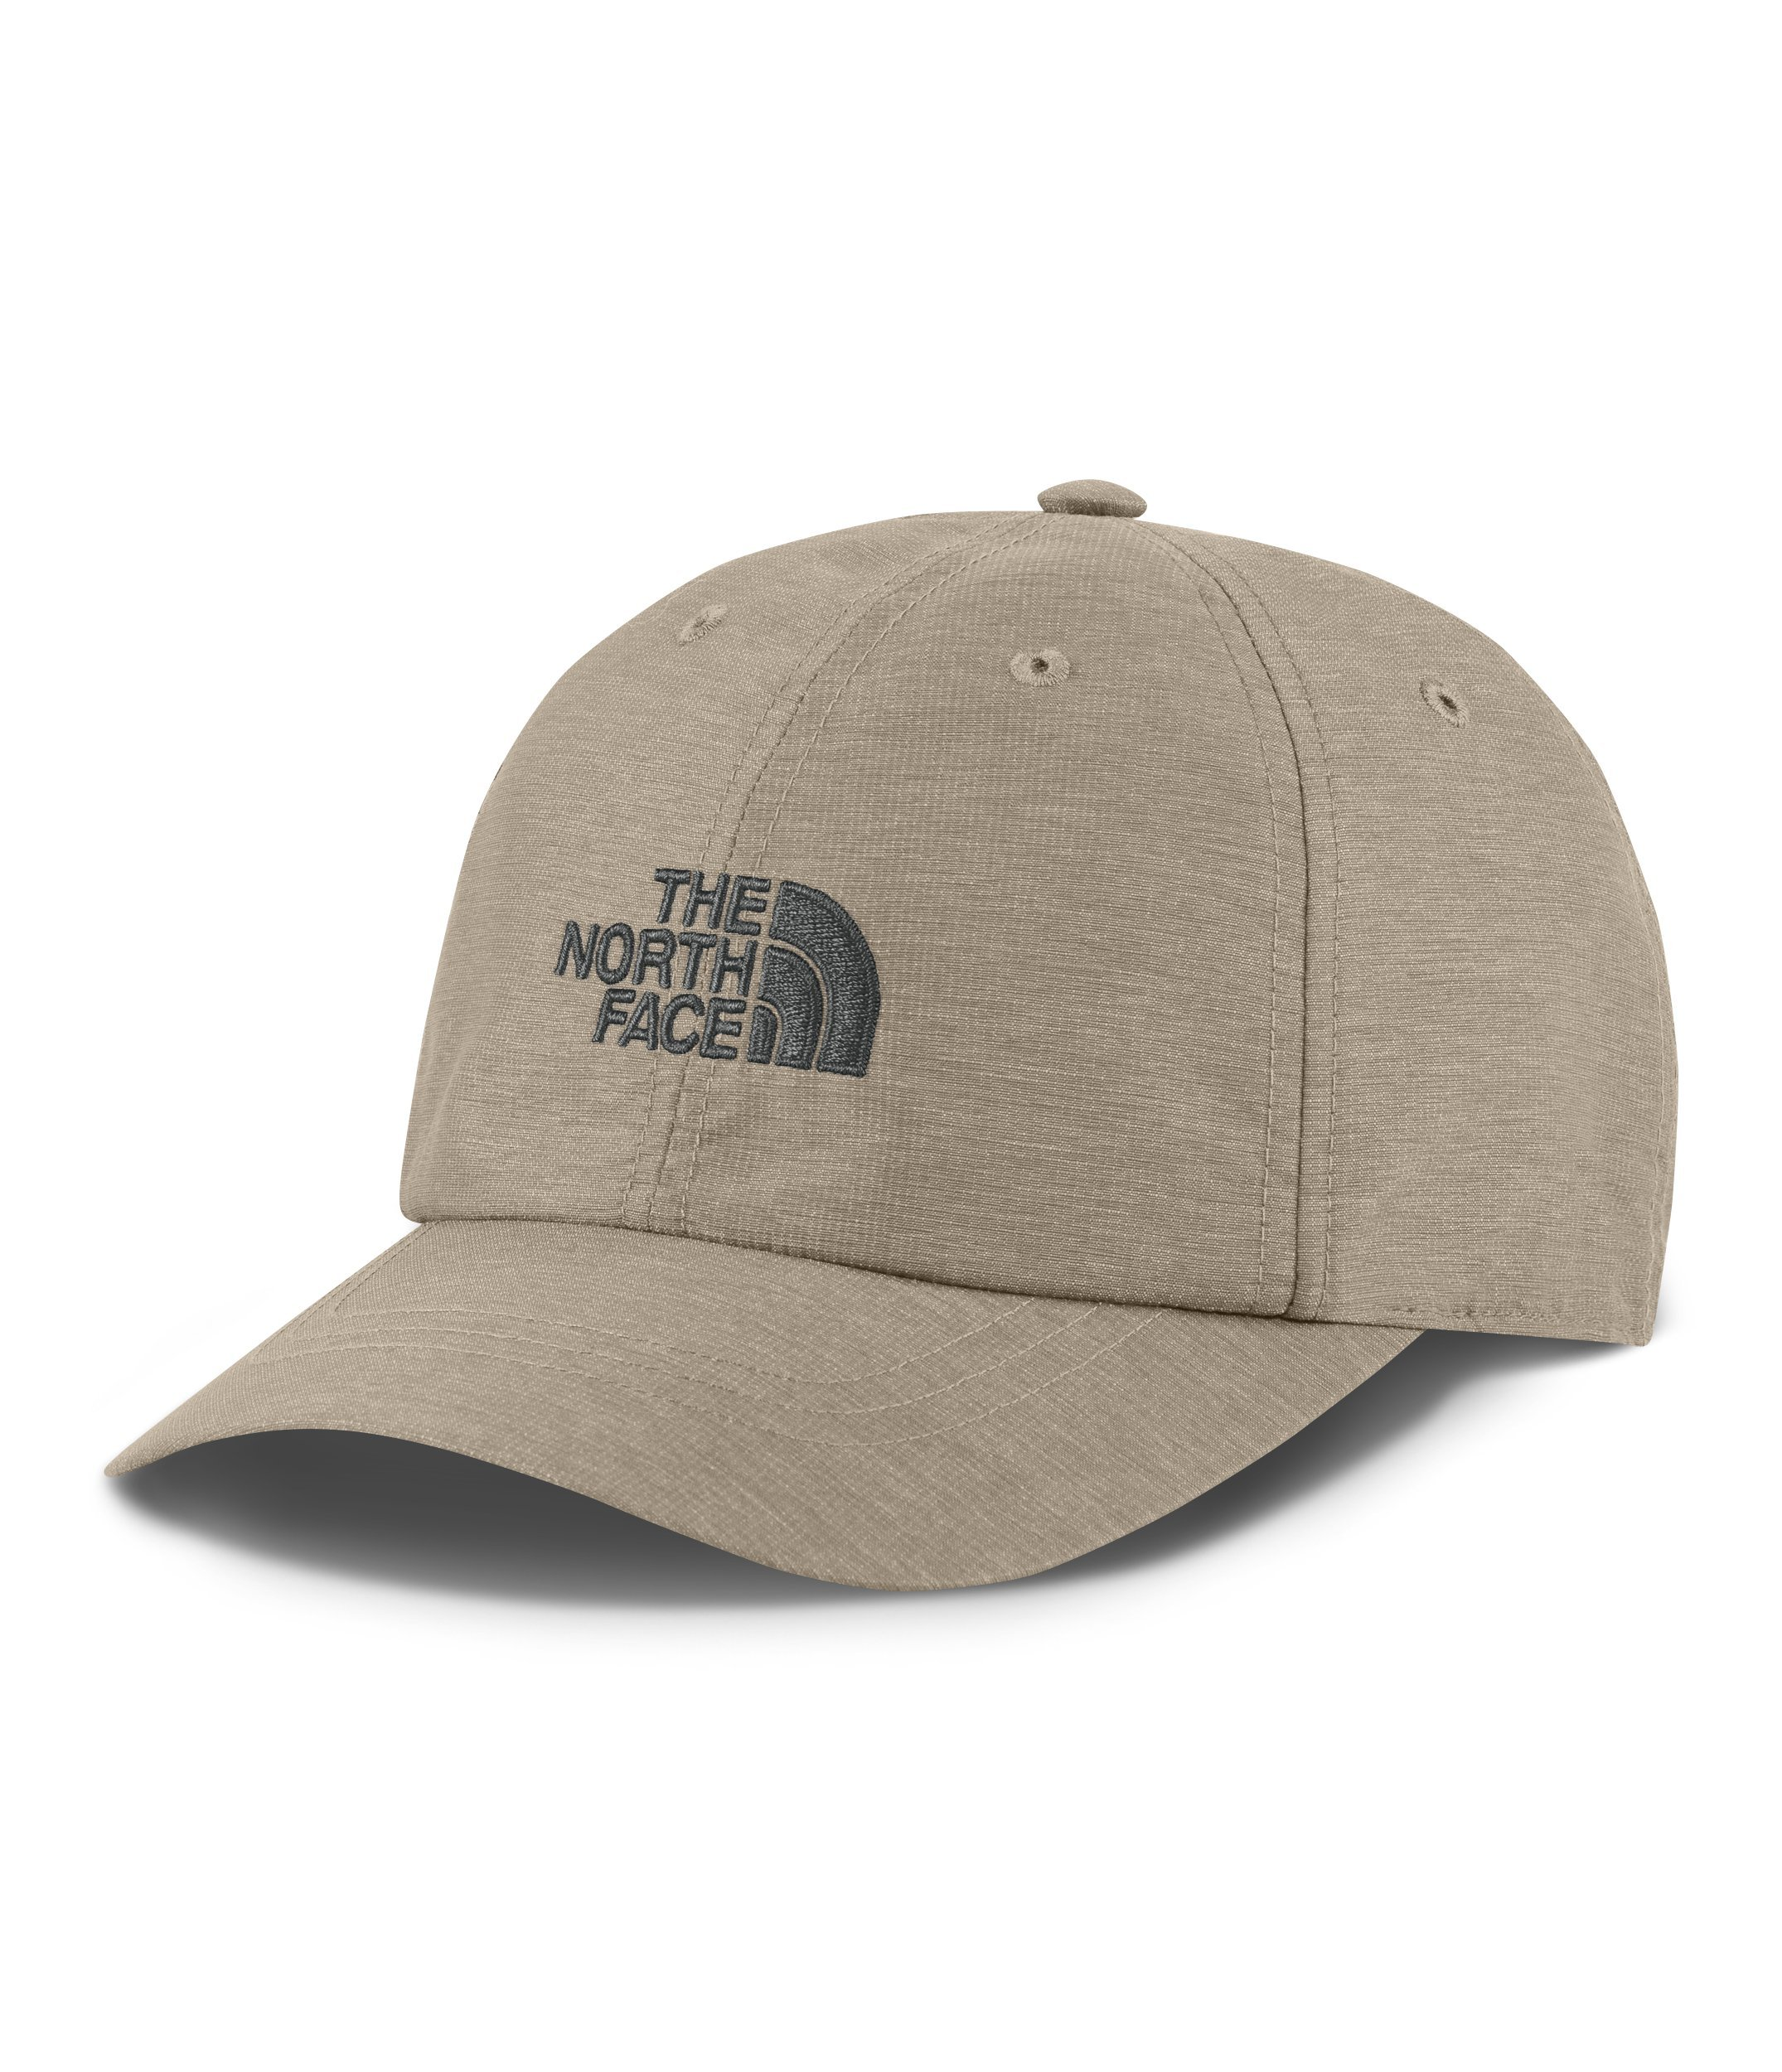 The North Face Unisex Horizon Ball Cap Dune Beige/Graphite Grey LG/XL